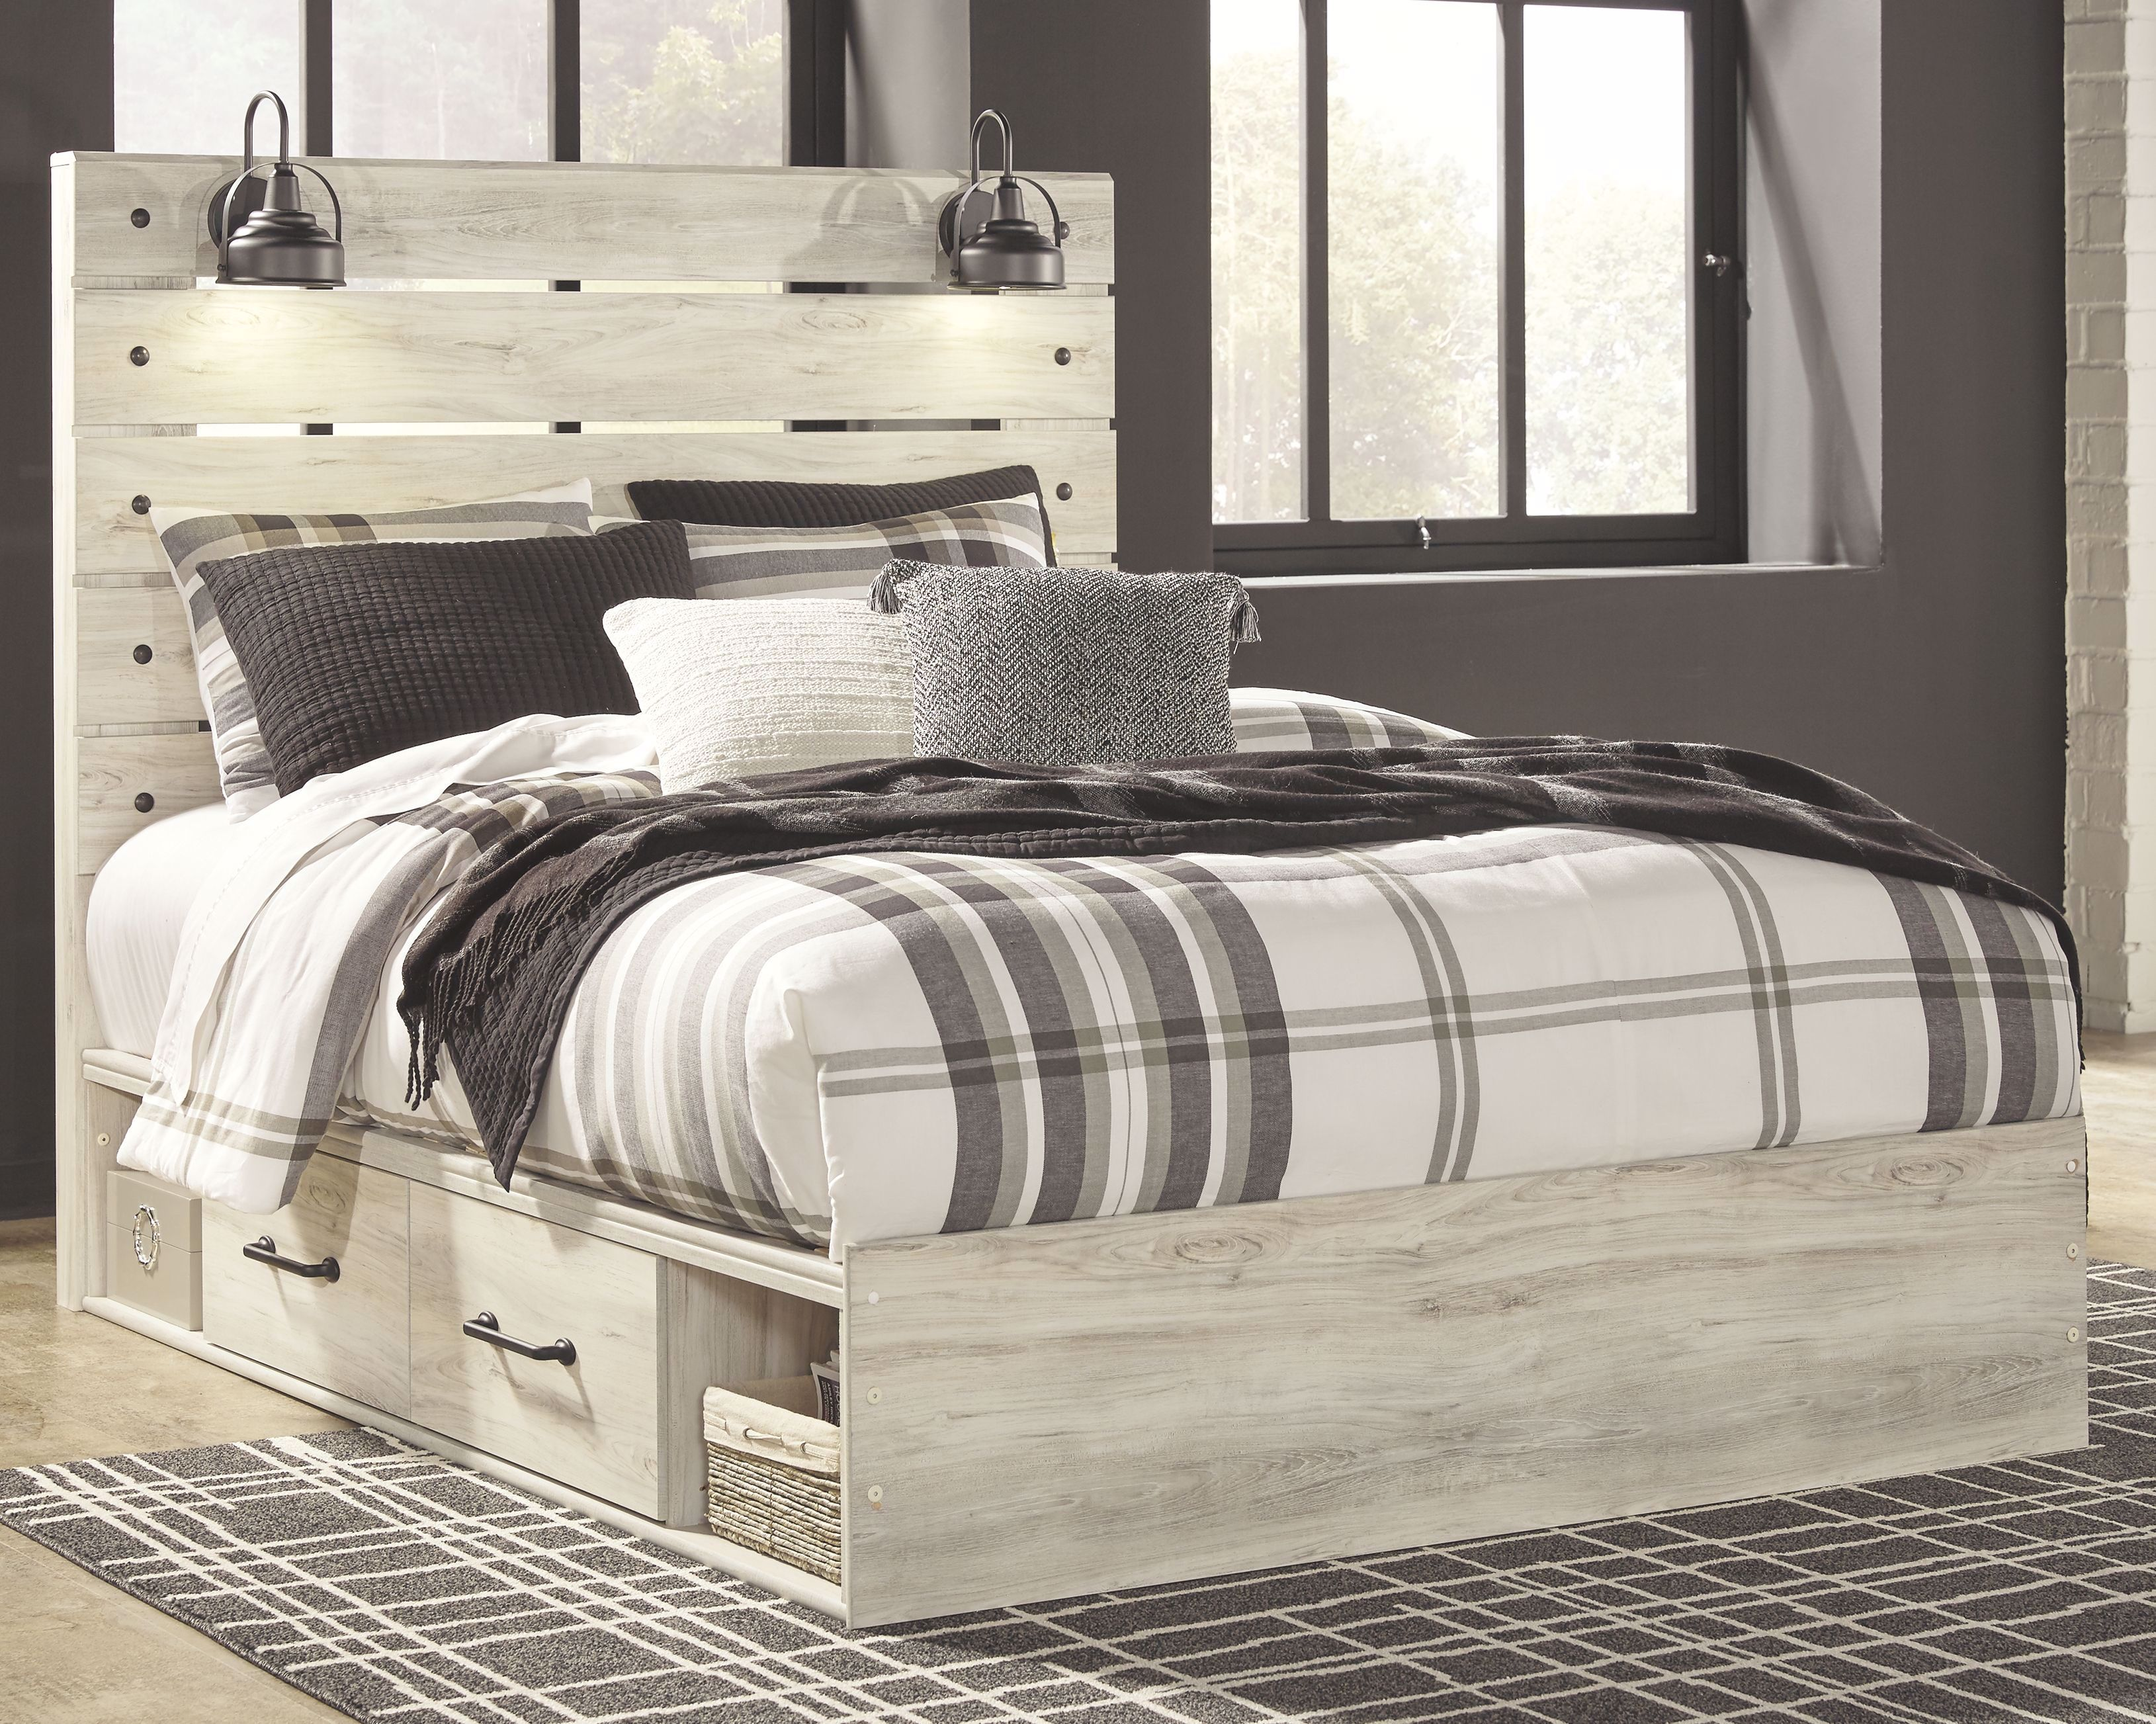 36+ Farmhouse bed frame queen most popular